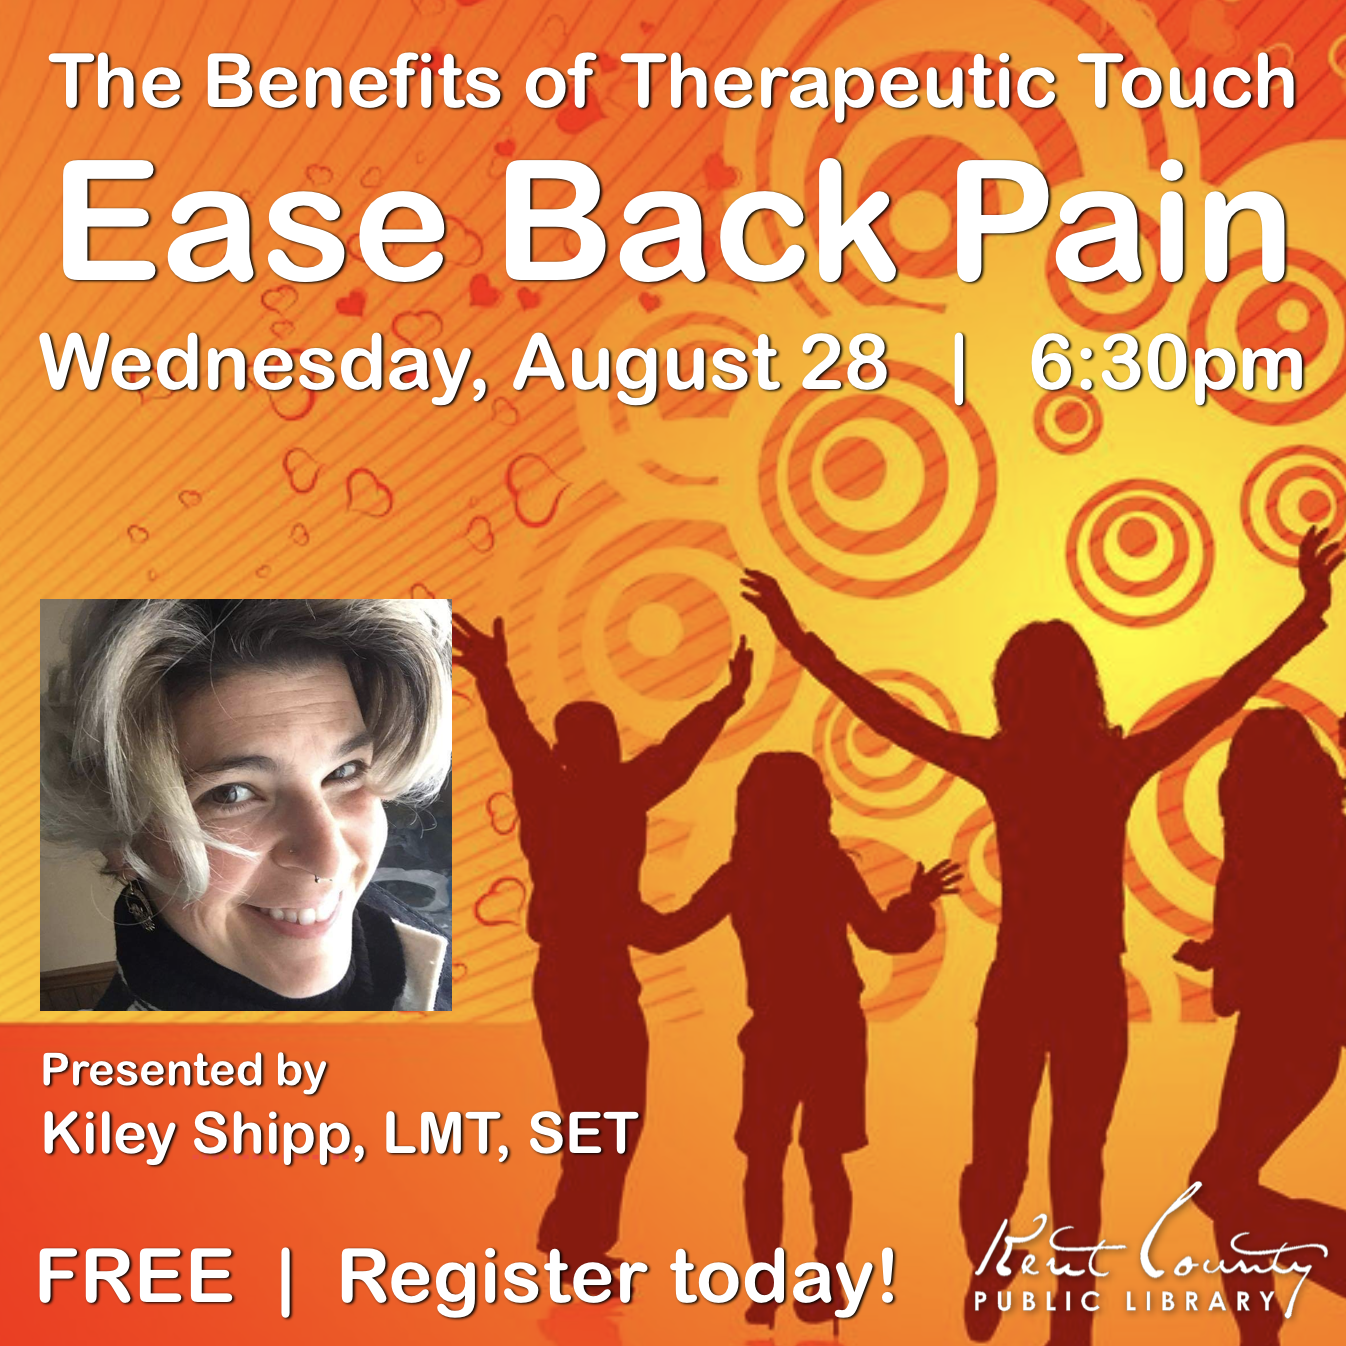 Ease Back Pain - Part 3 of The Benefits of Therapeutic Touch Series